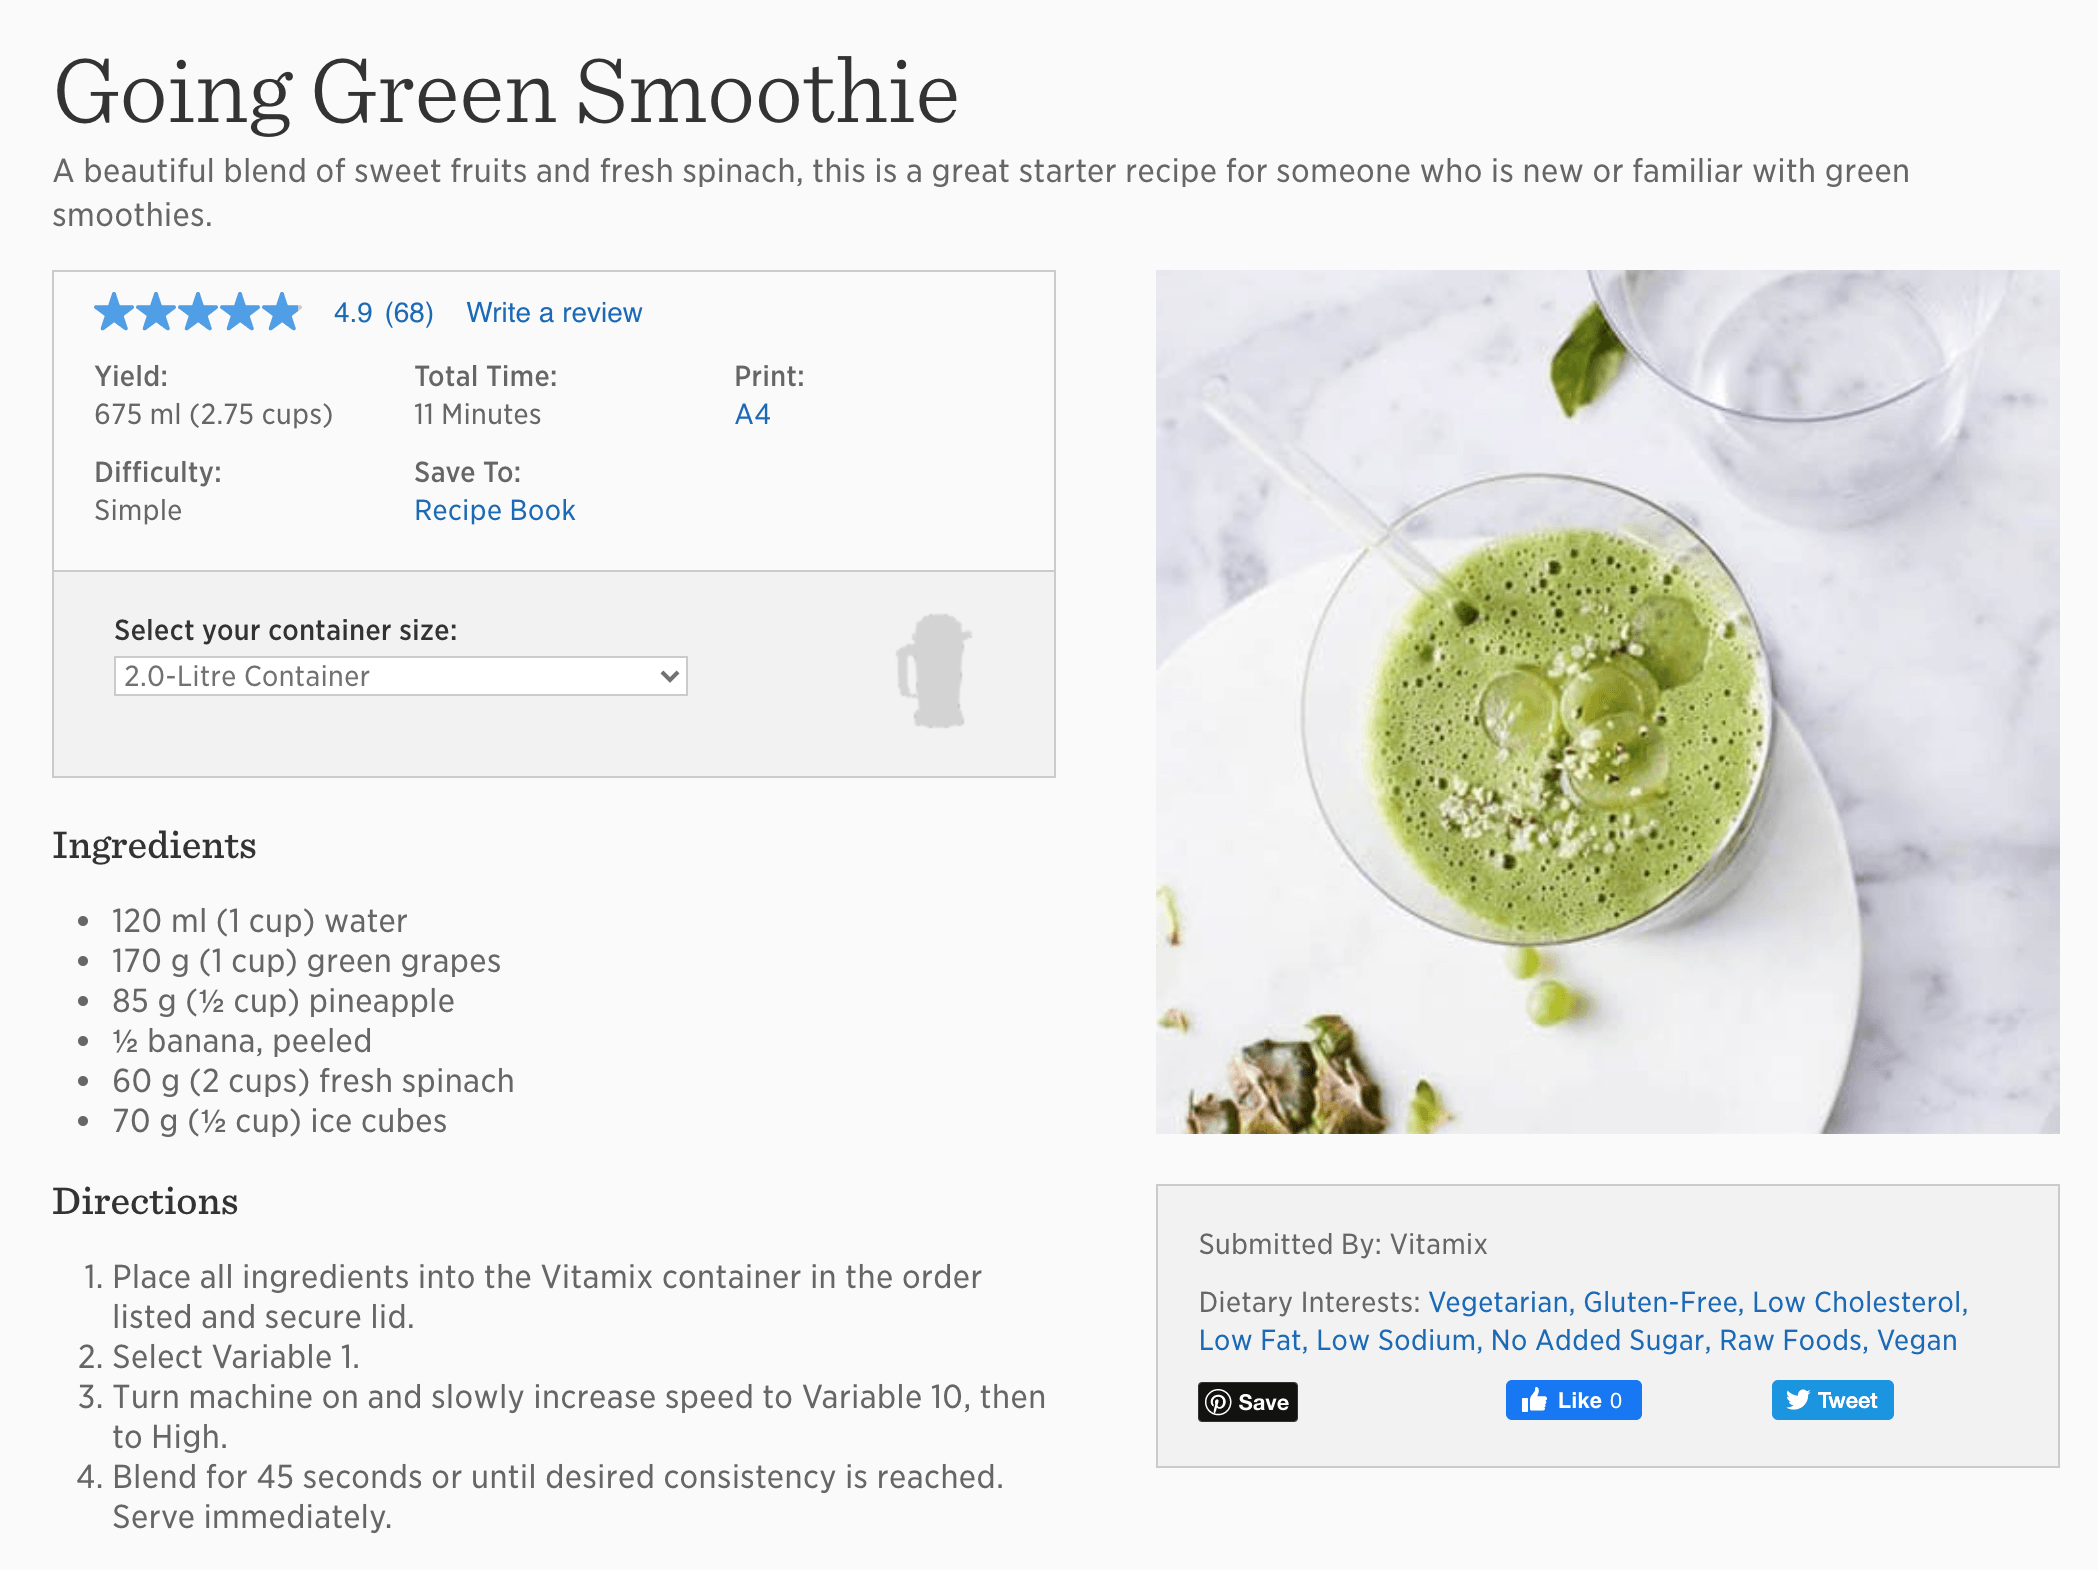 Going Green Smoothie by Vitamix